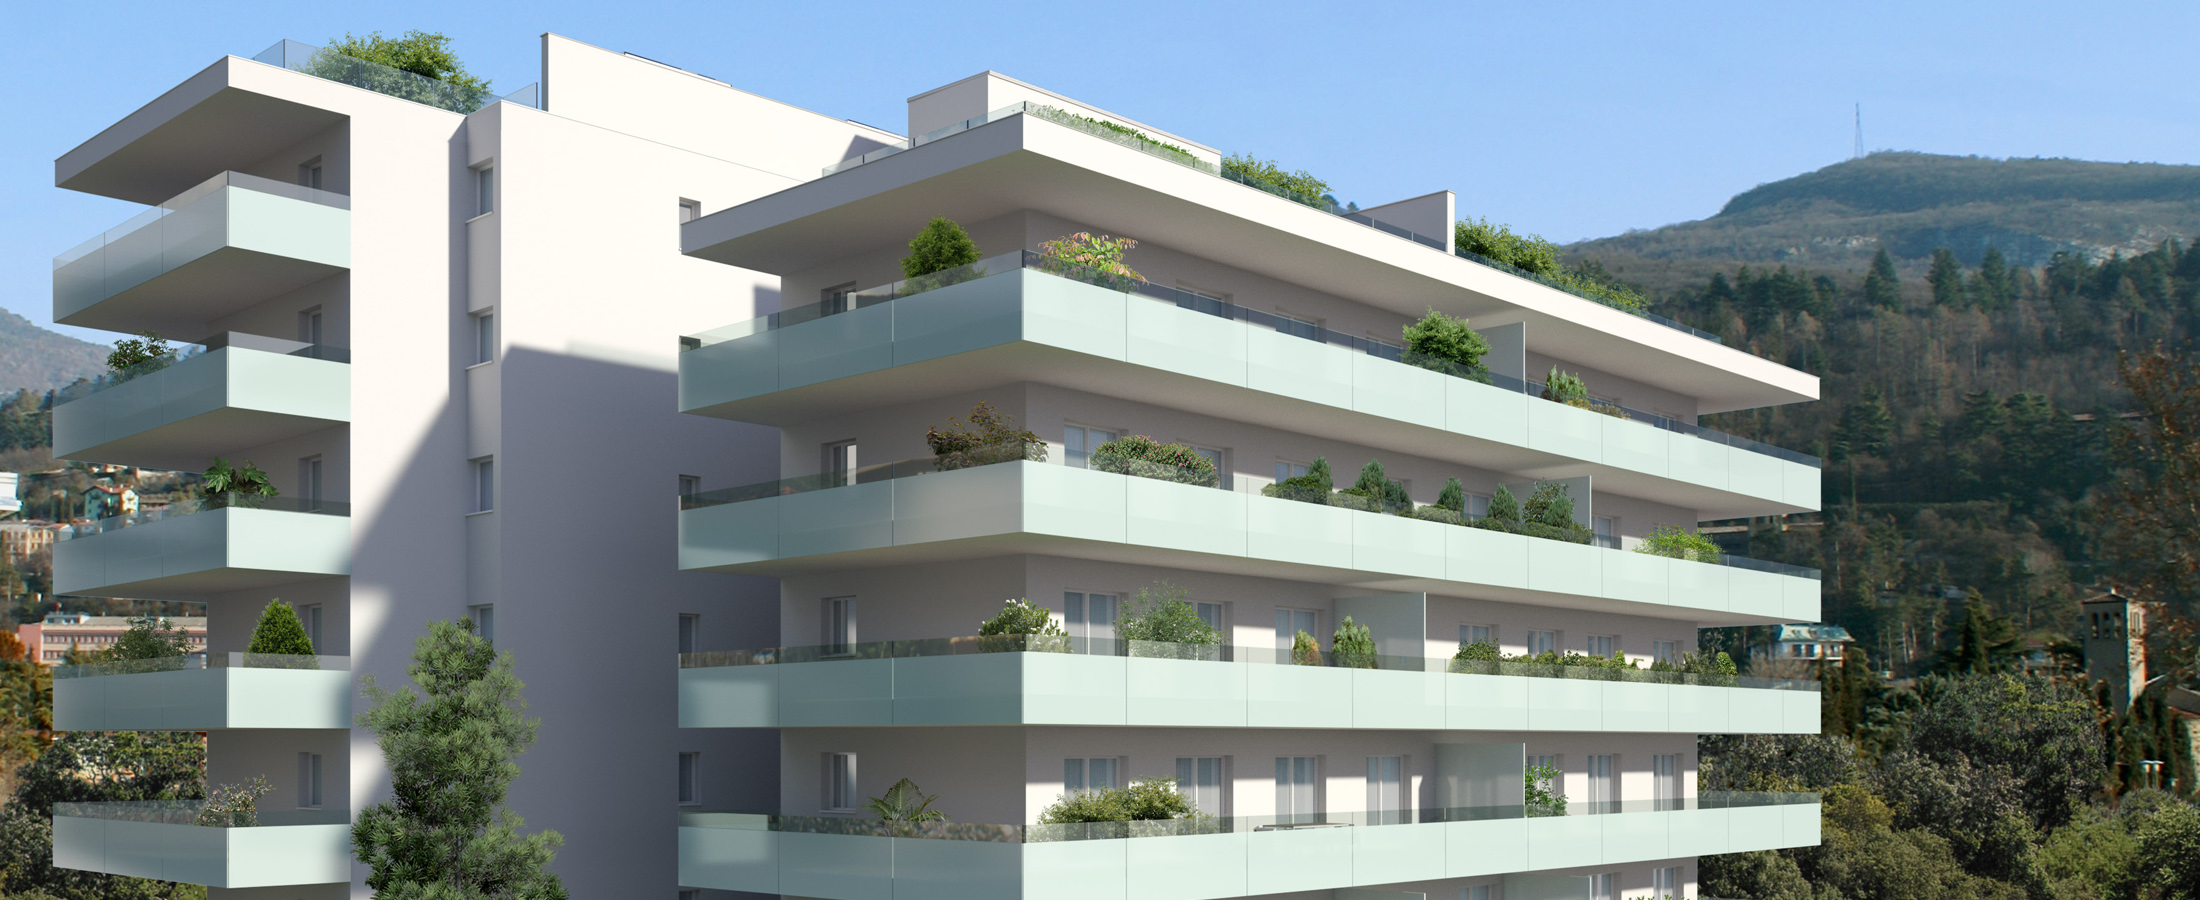 residence-immobiliarecm